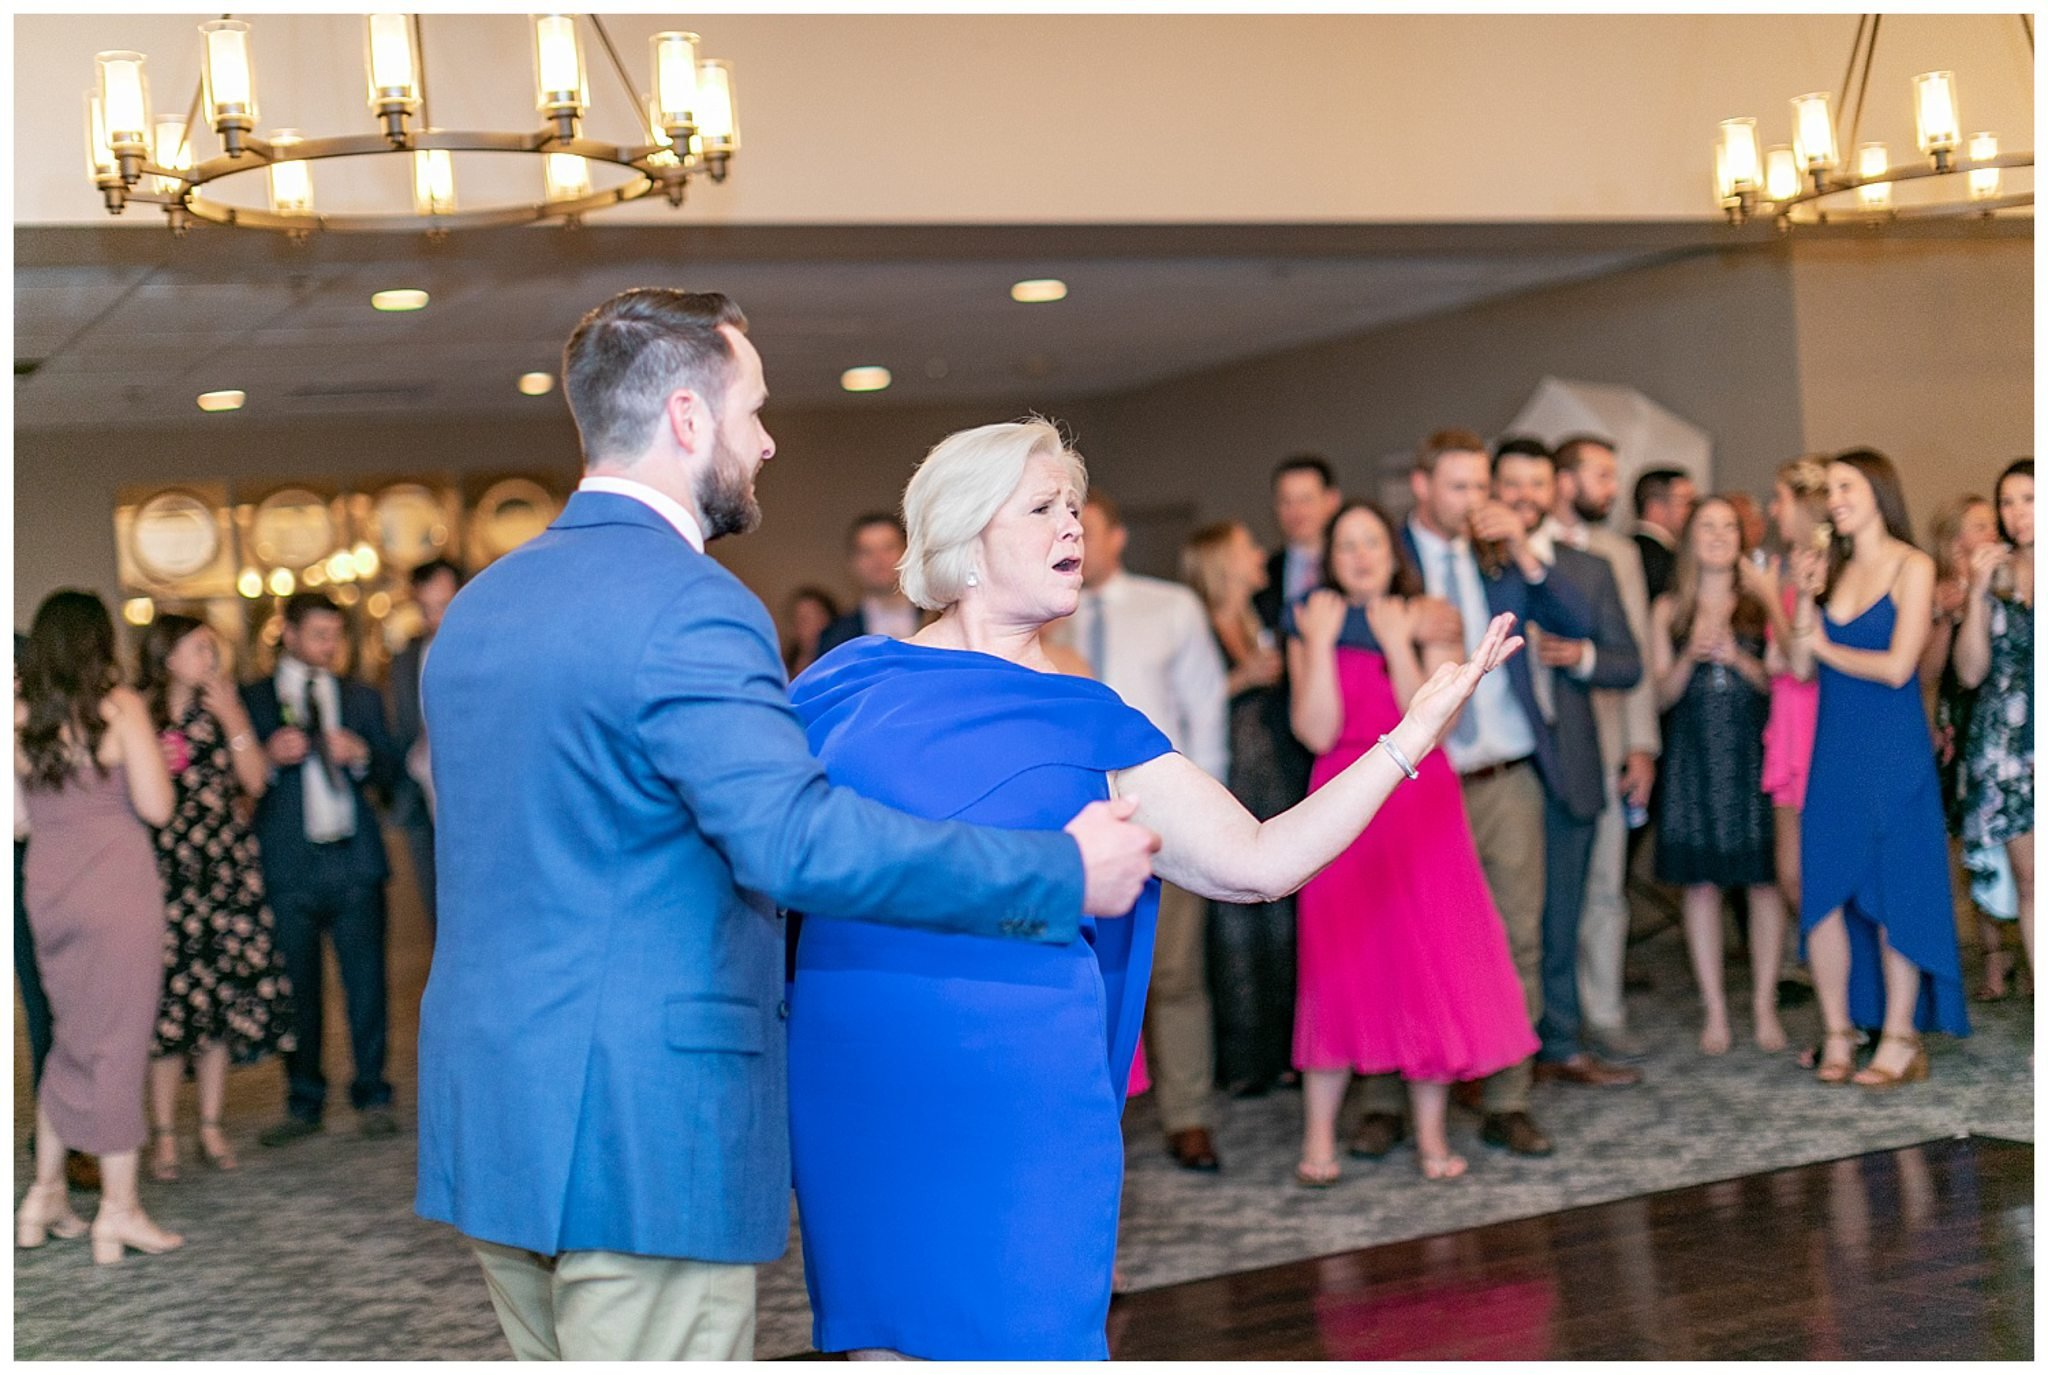 wedding,priority,investment,wedding photography, 3 Reasons Why wedding photography should be a priority, Fine Art Wedding Photographer Baltimore MD